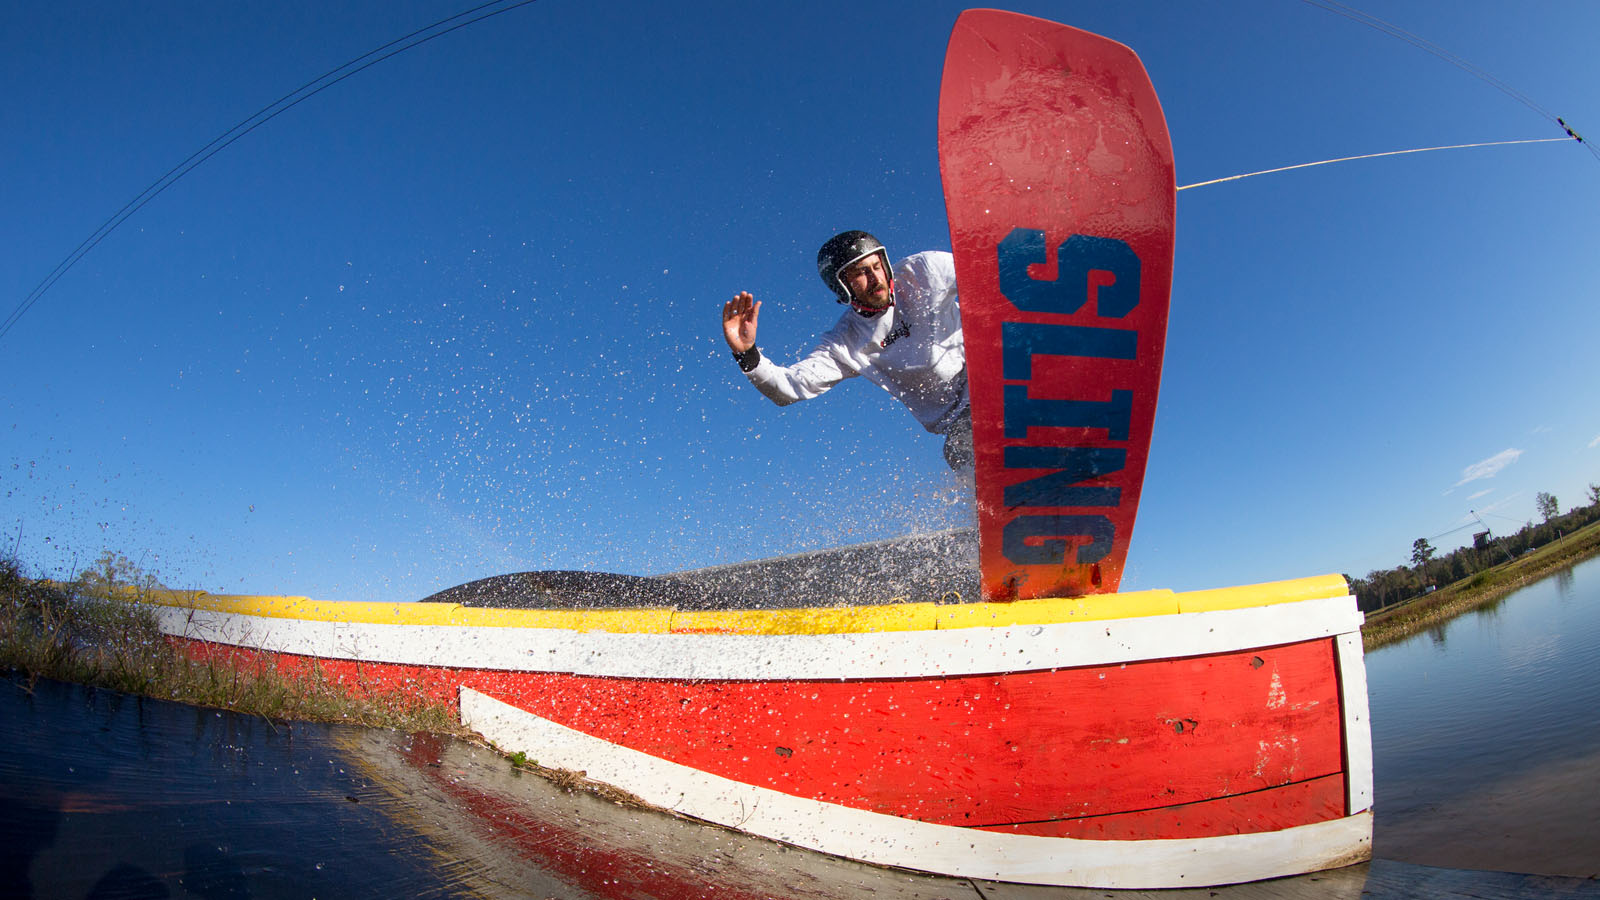 Protec SS21 Wakeboard Hardgoods Preview